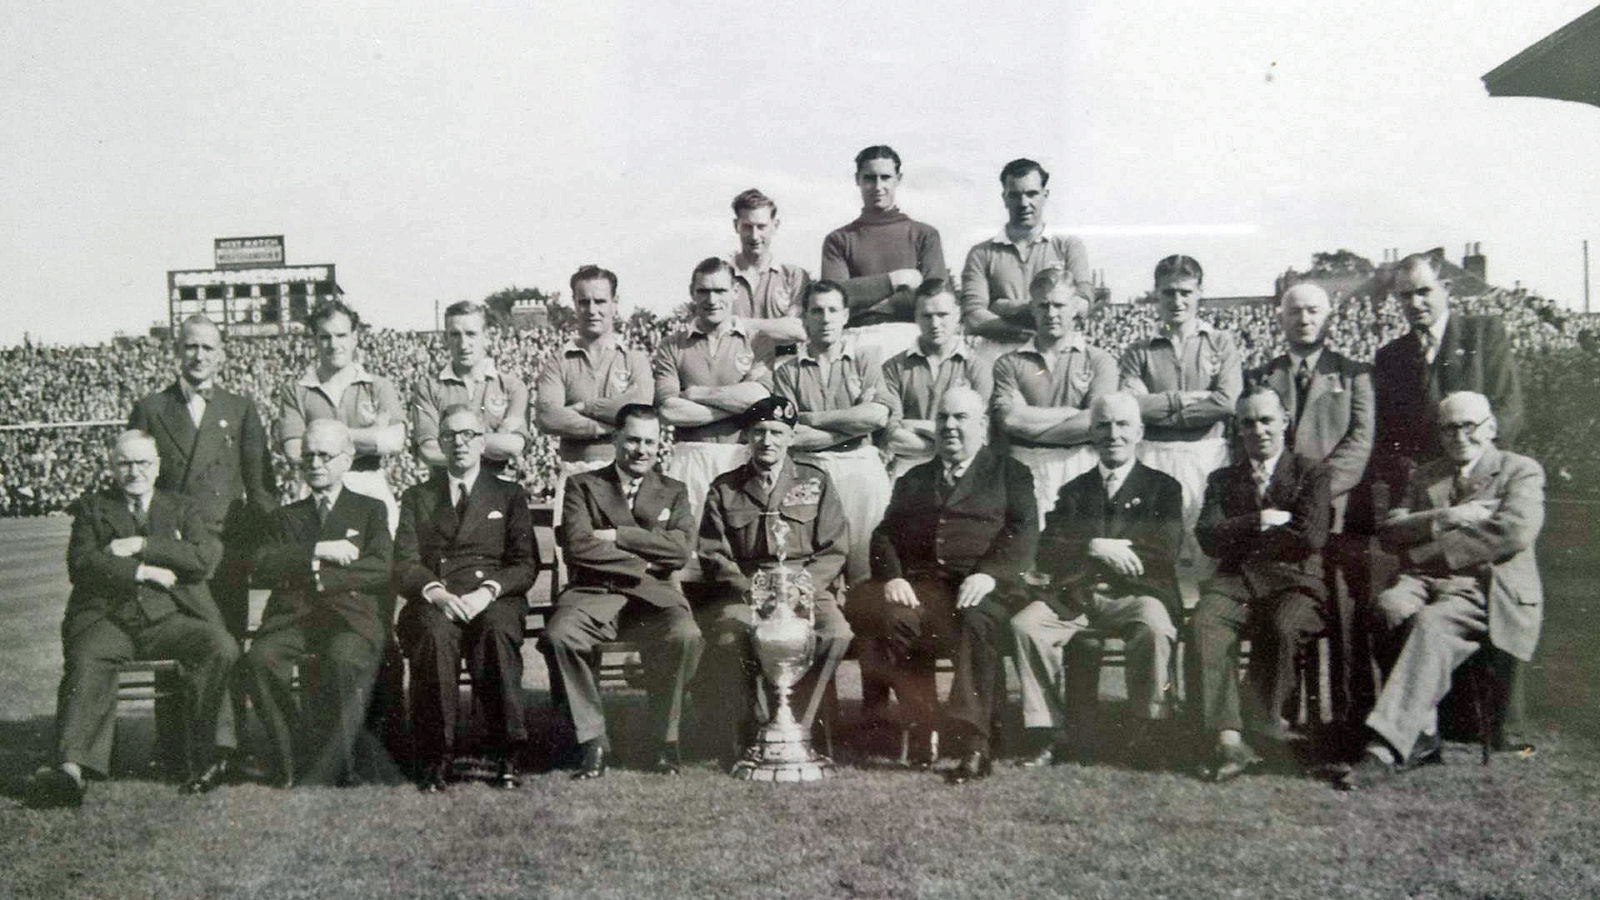 PLAY UP POMPEY: Field Marshall Montgomery with the Division One championship trophy with Mr Chinneck to the right